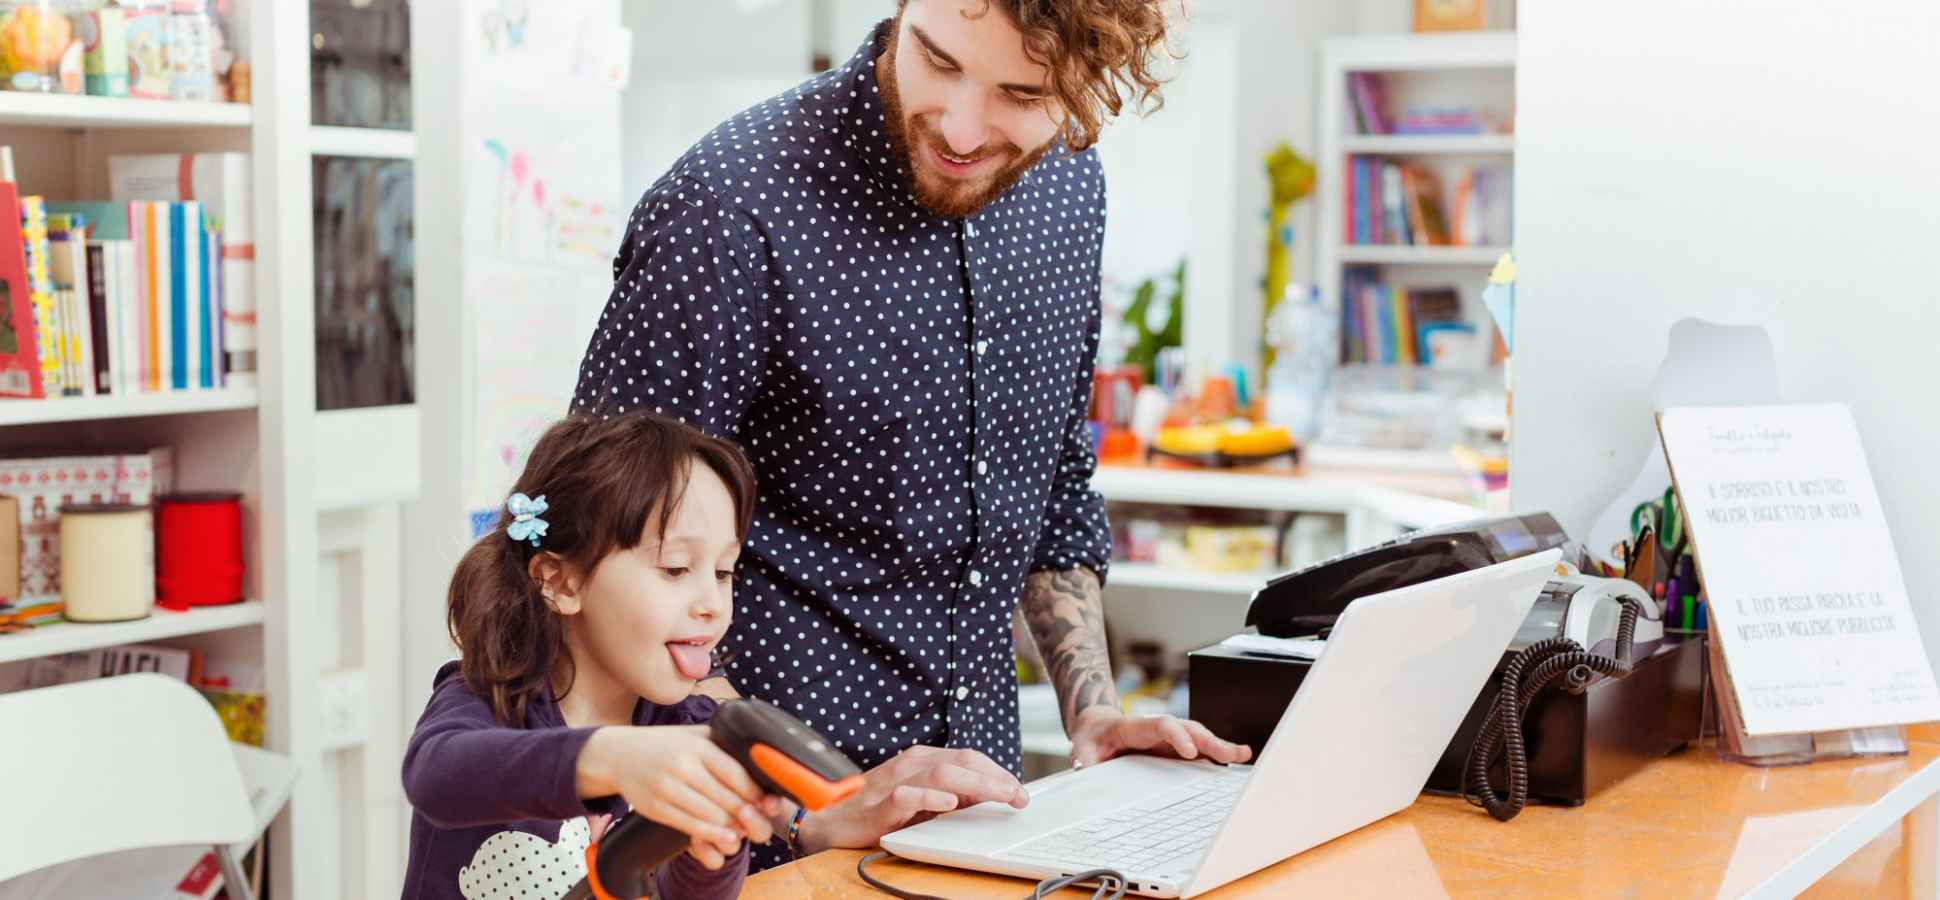 Can Entrepreneurship Be Taught? Yes, And It Might Be Easier Than You Think